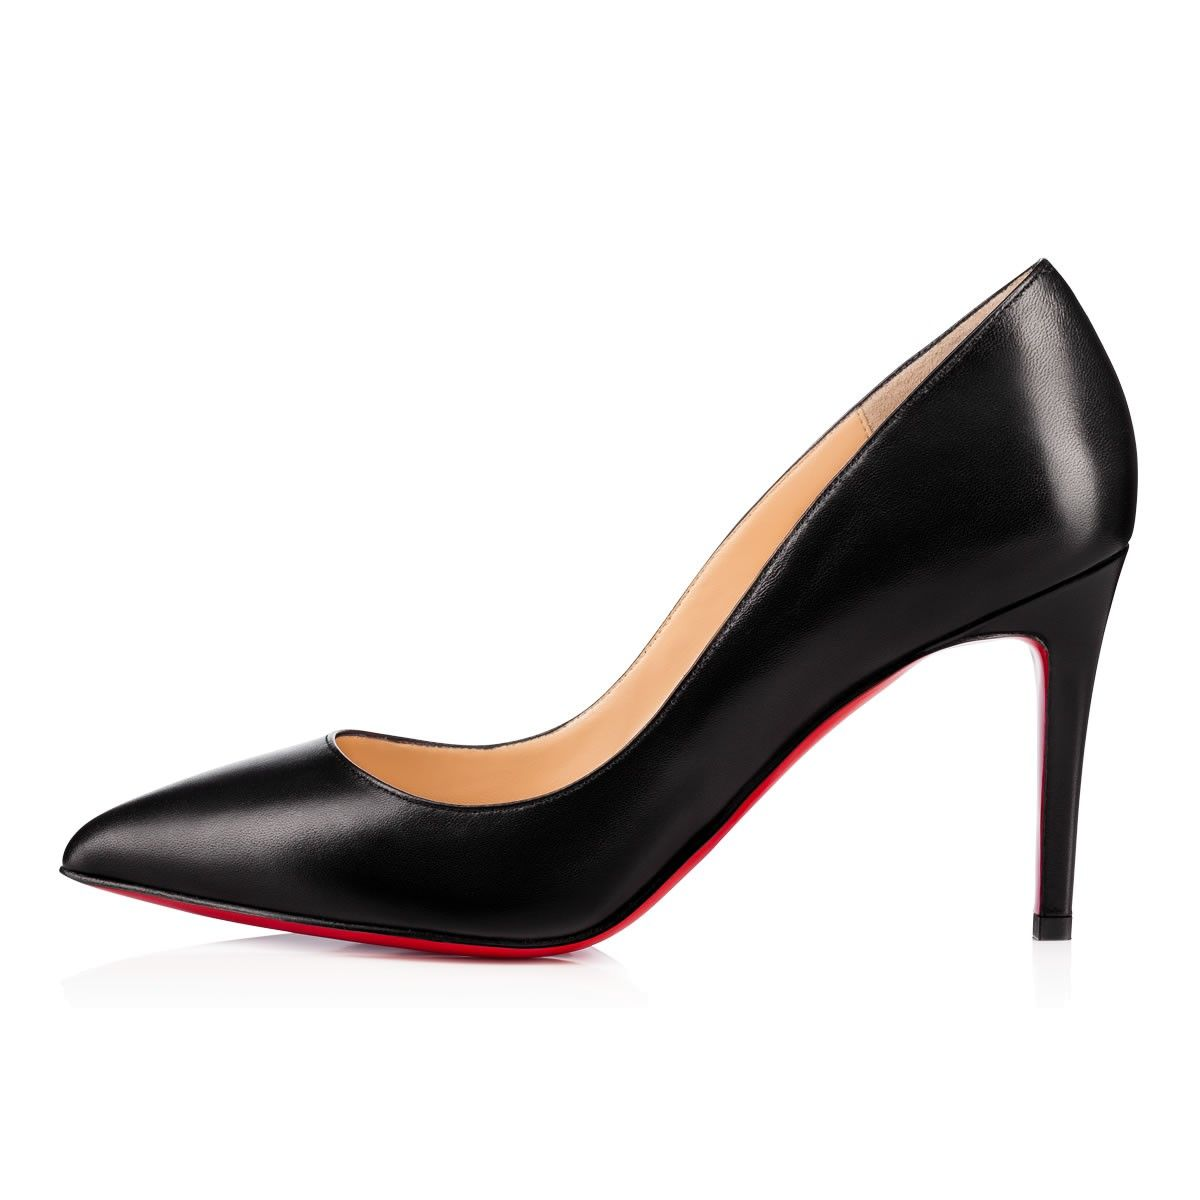 Pigalle 85 Black Leather - Women Shoes - Christian Louboutin